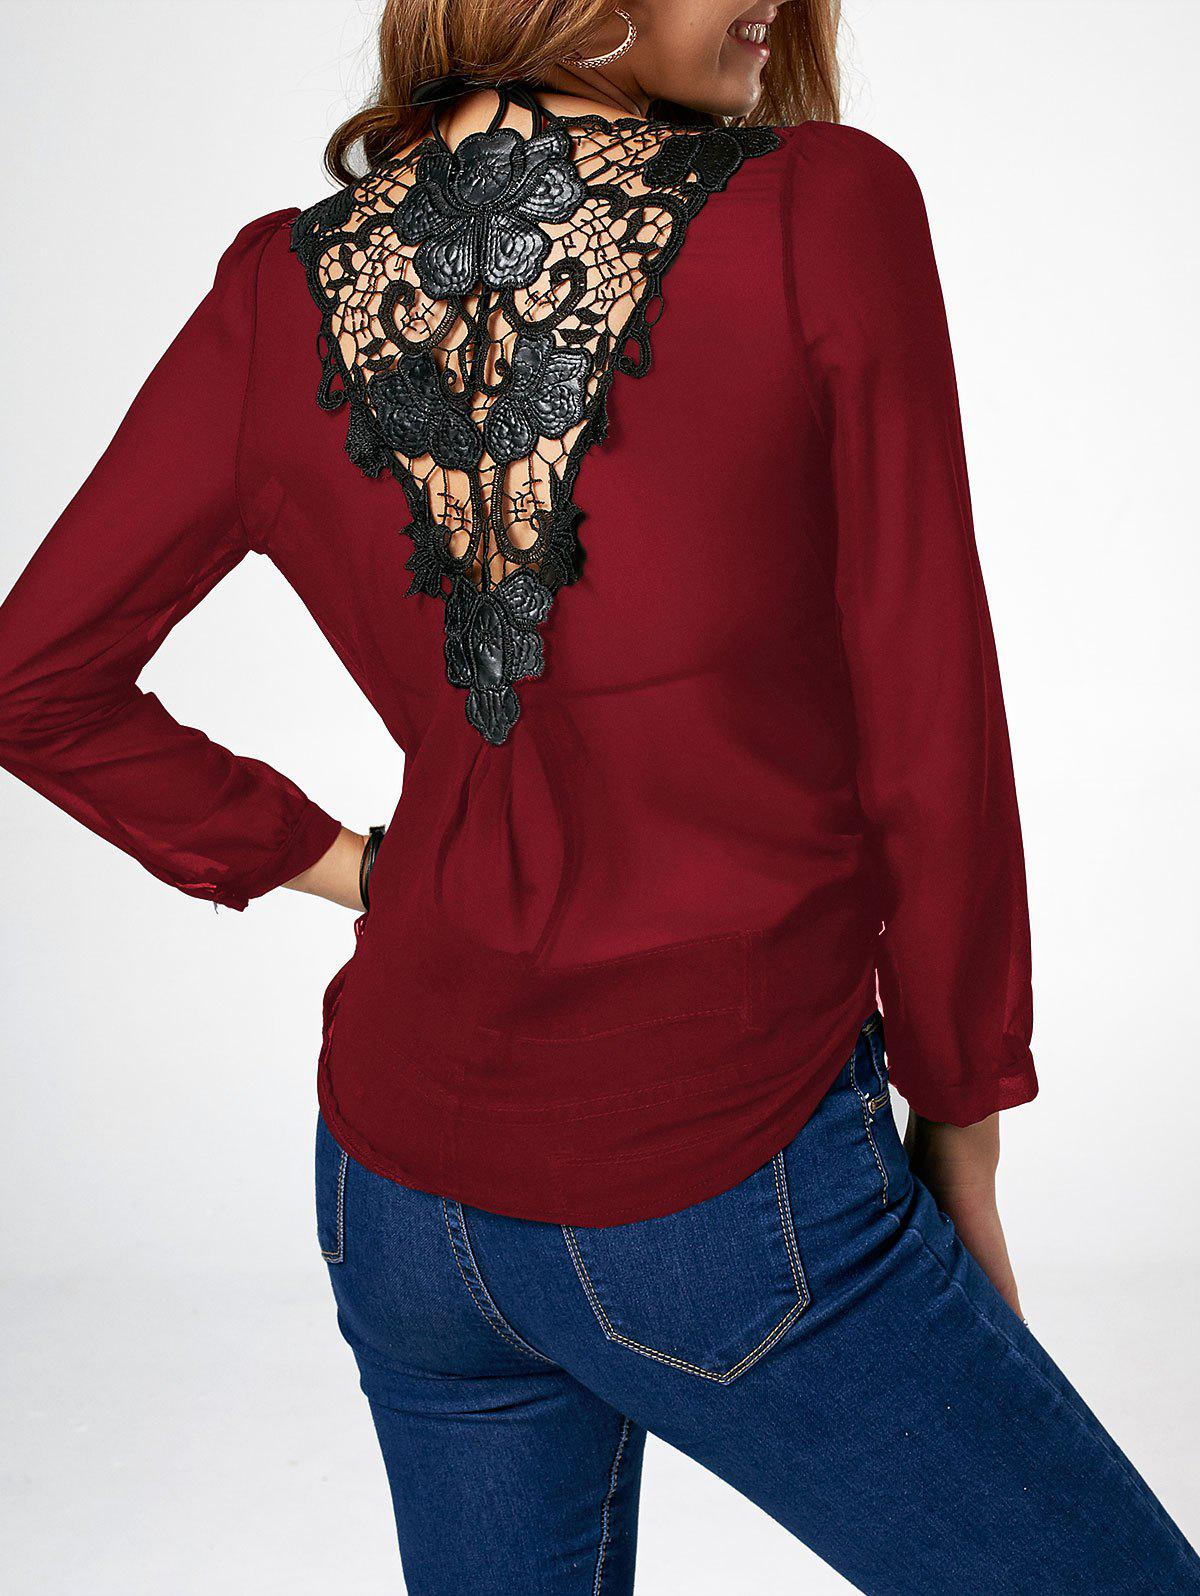 Shop Lace Trim Asymmetric Chiffon Long Sleeve Blouse